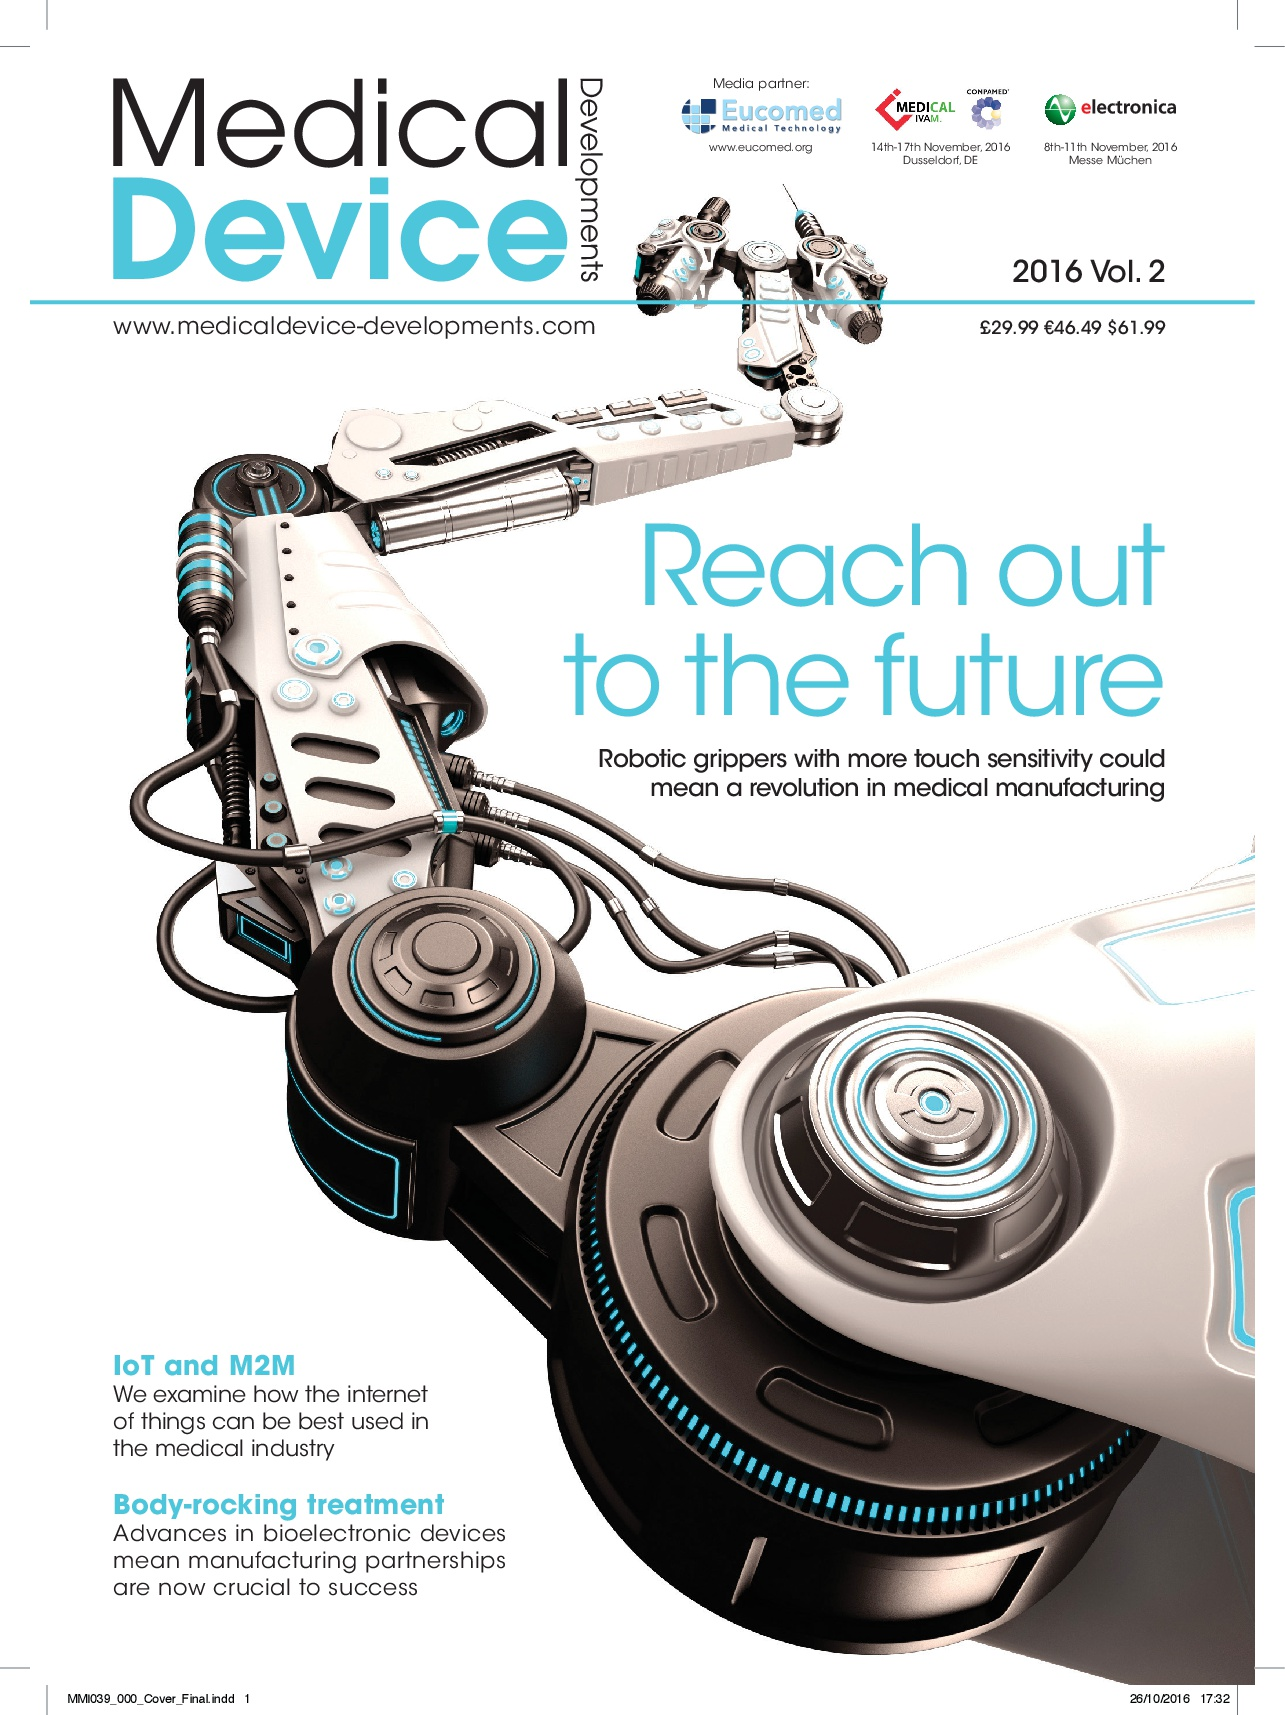 Medical Device Developments Vol. 2 2016